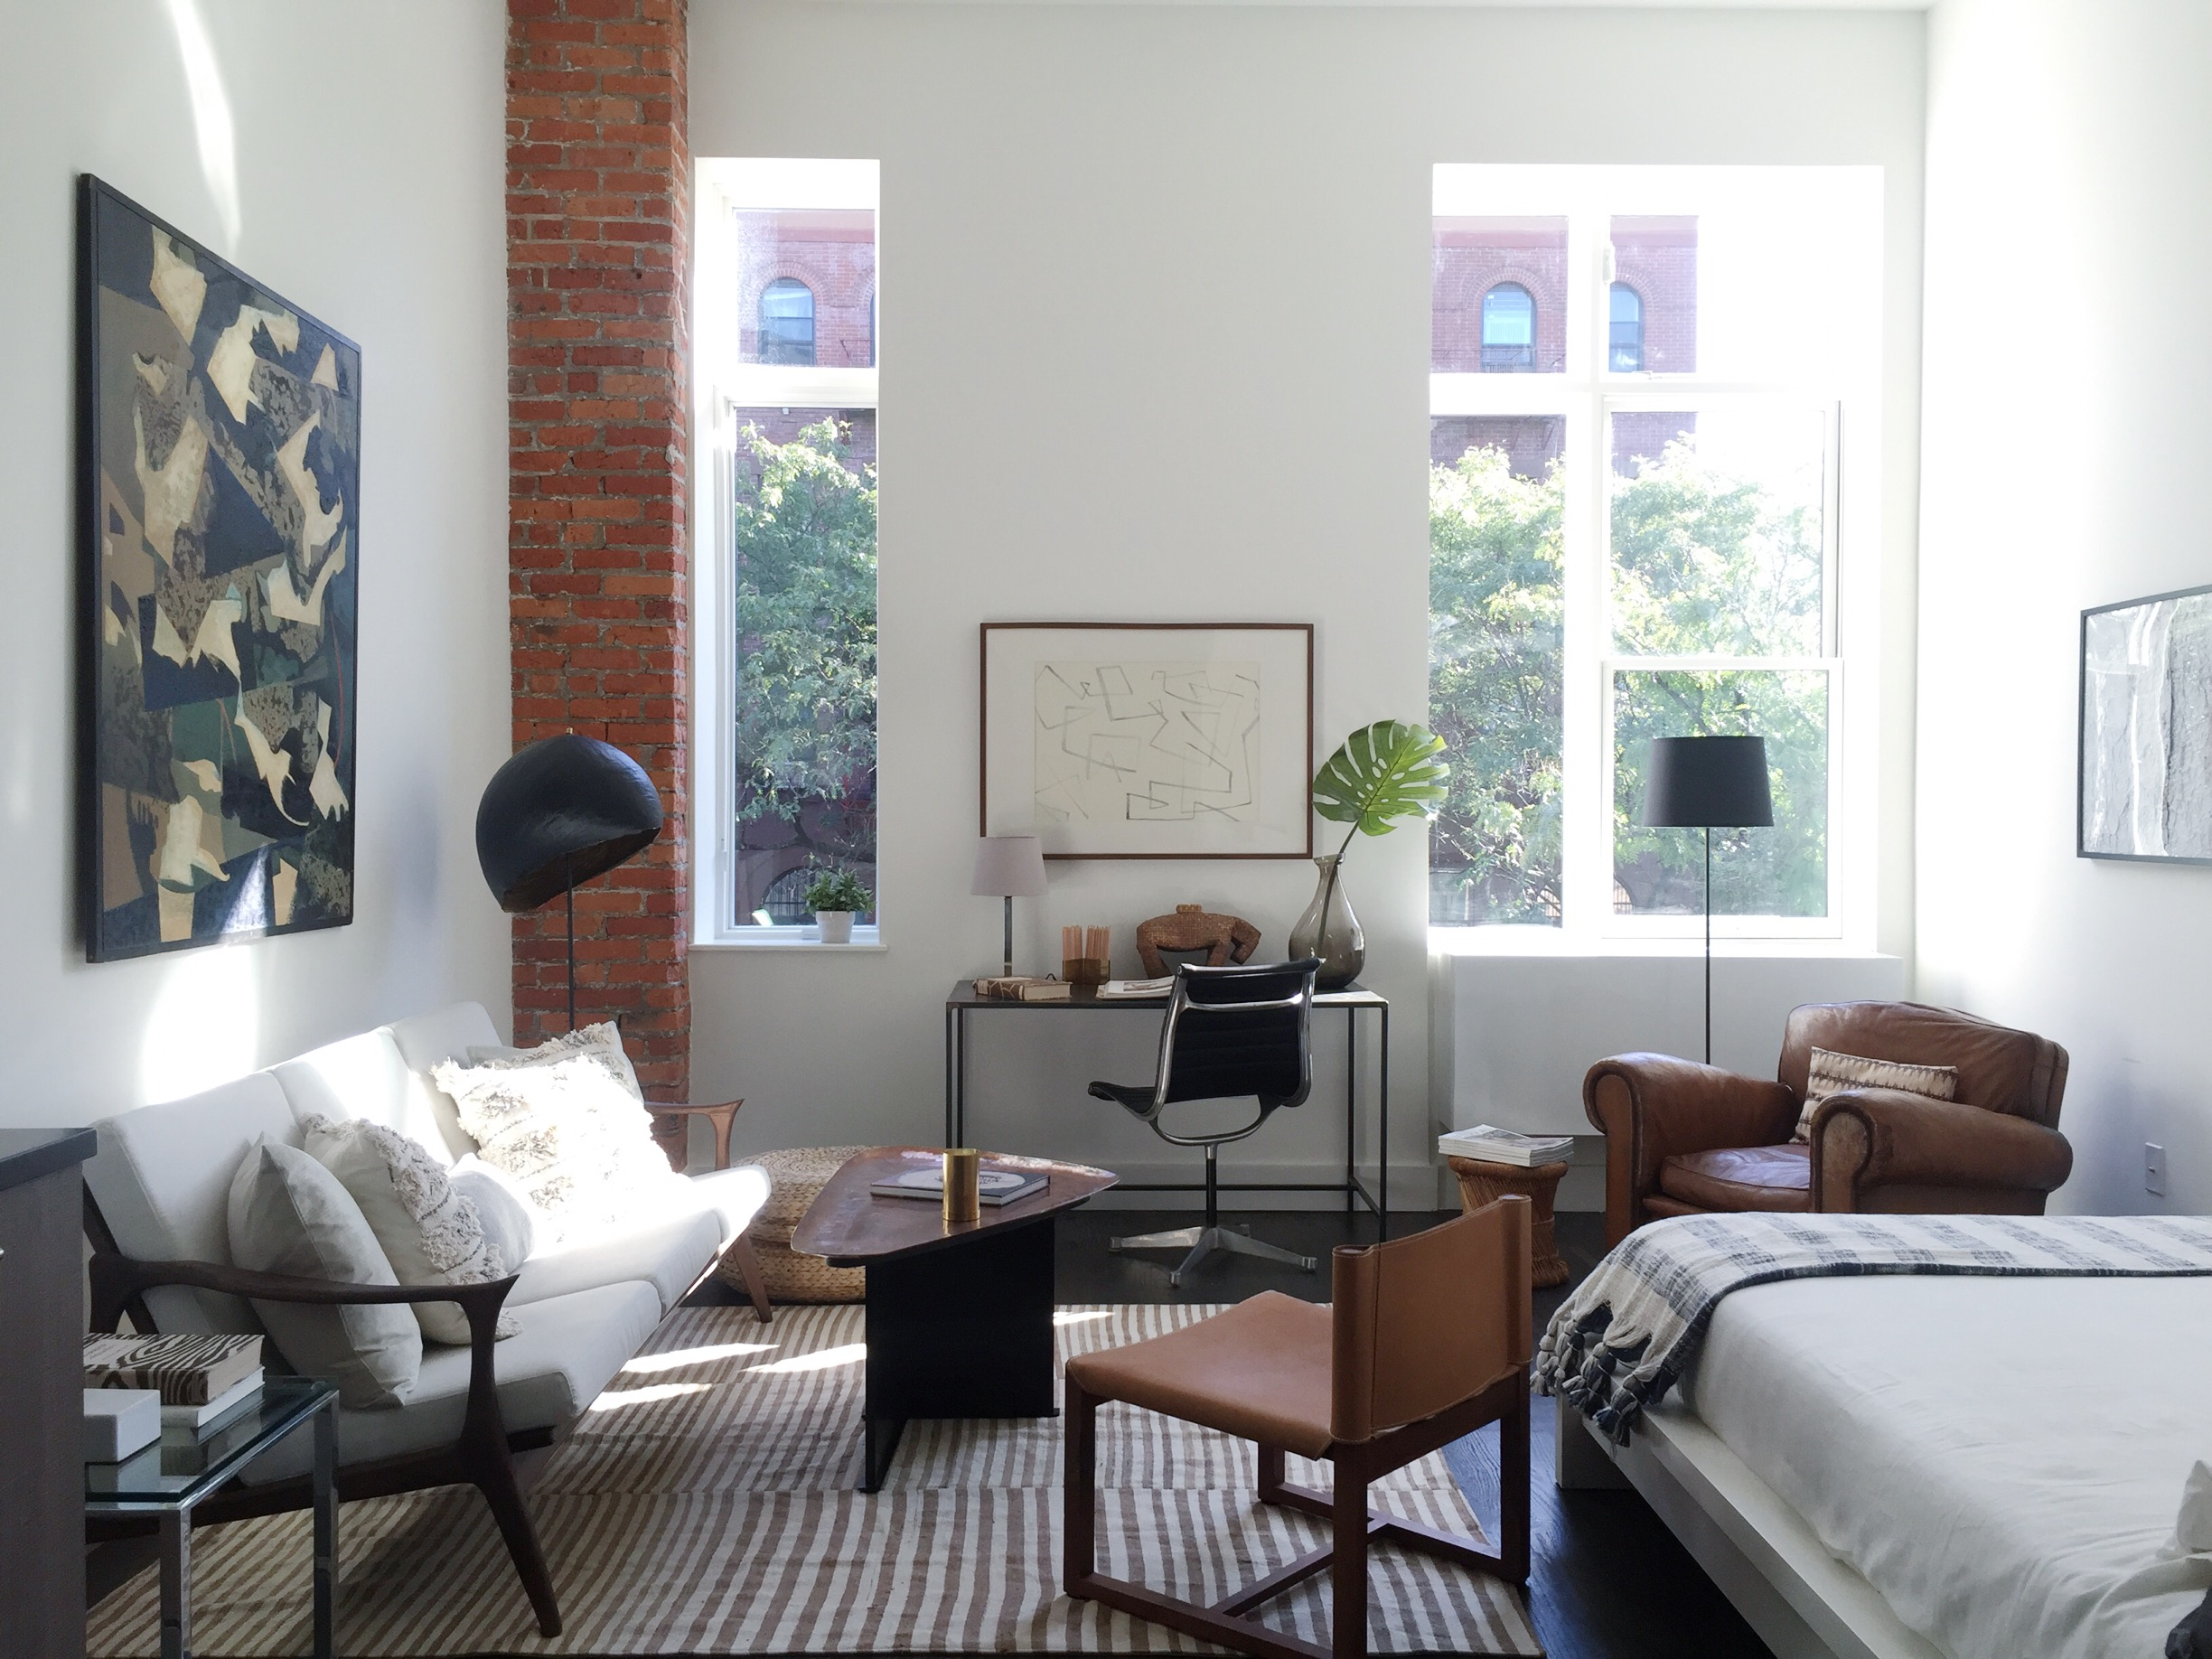 Hovey Design - New Development - Staging - Billiard Factory Lofts - Prospect Heights Brooklyn - Studio Horizontal.JPG